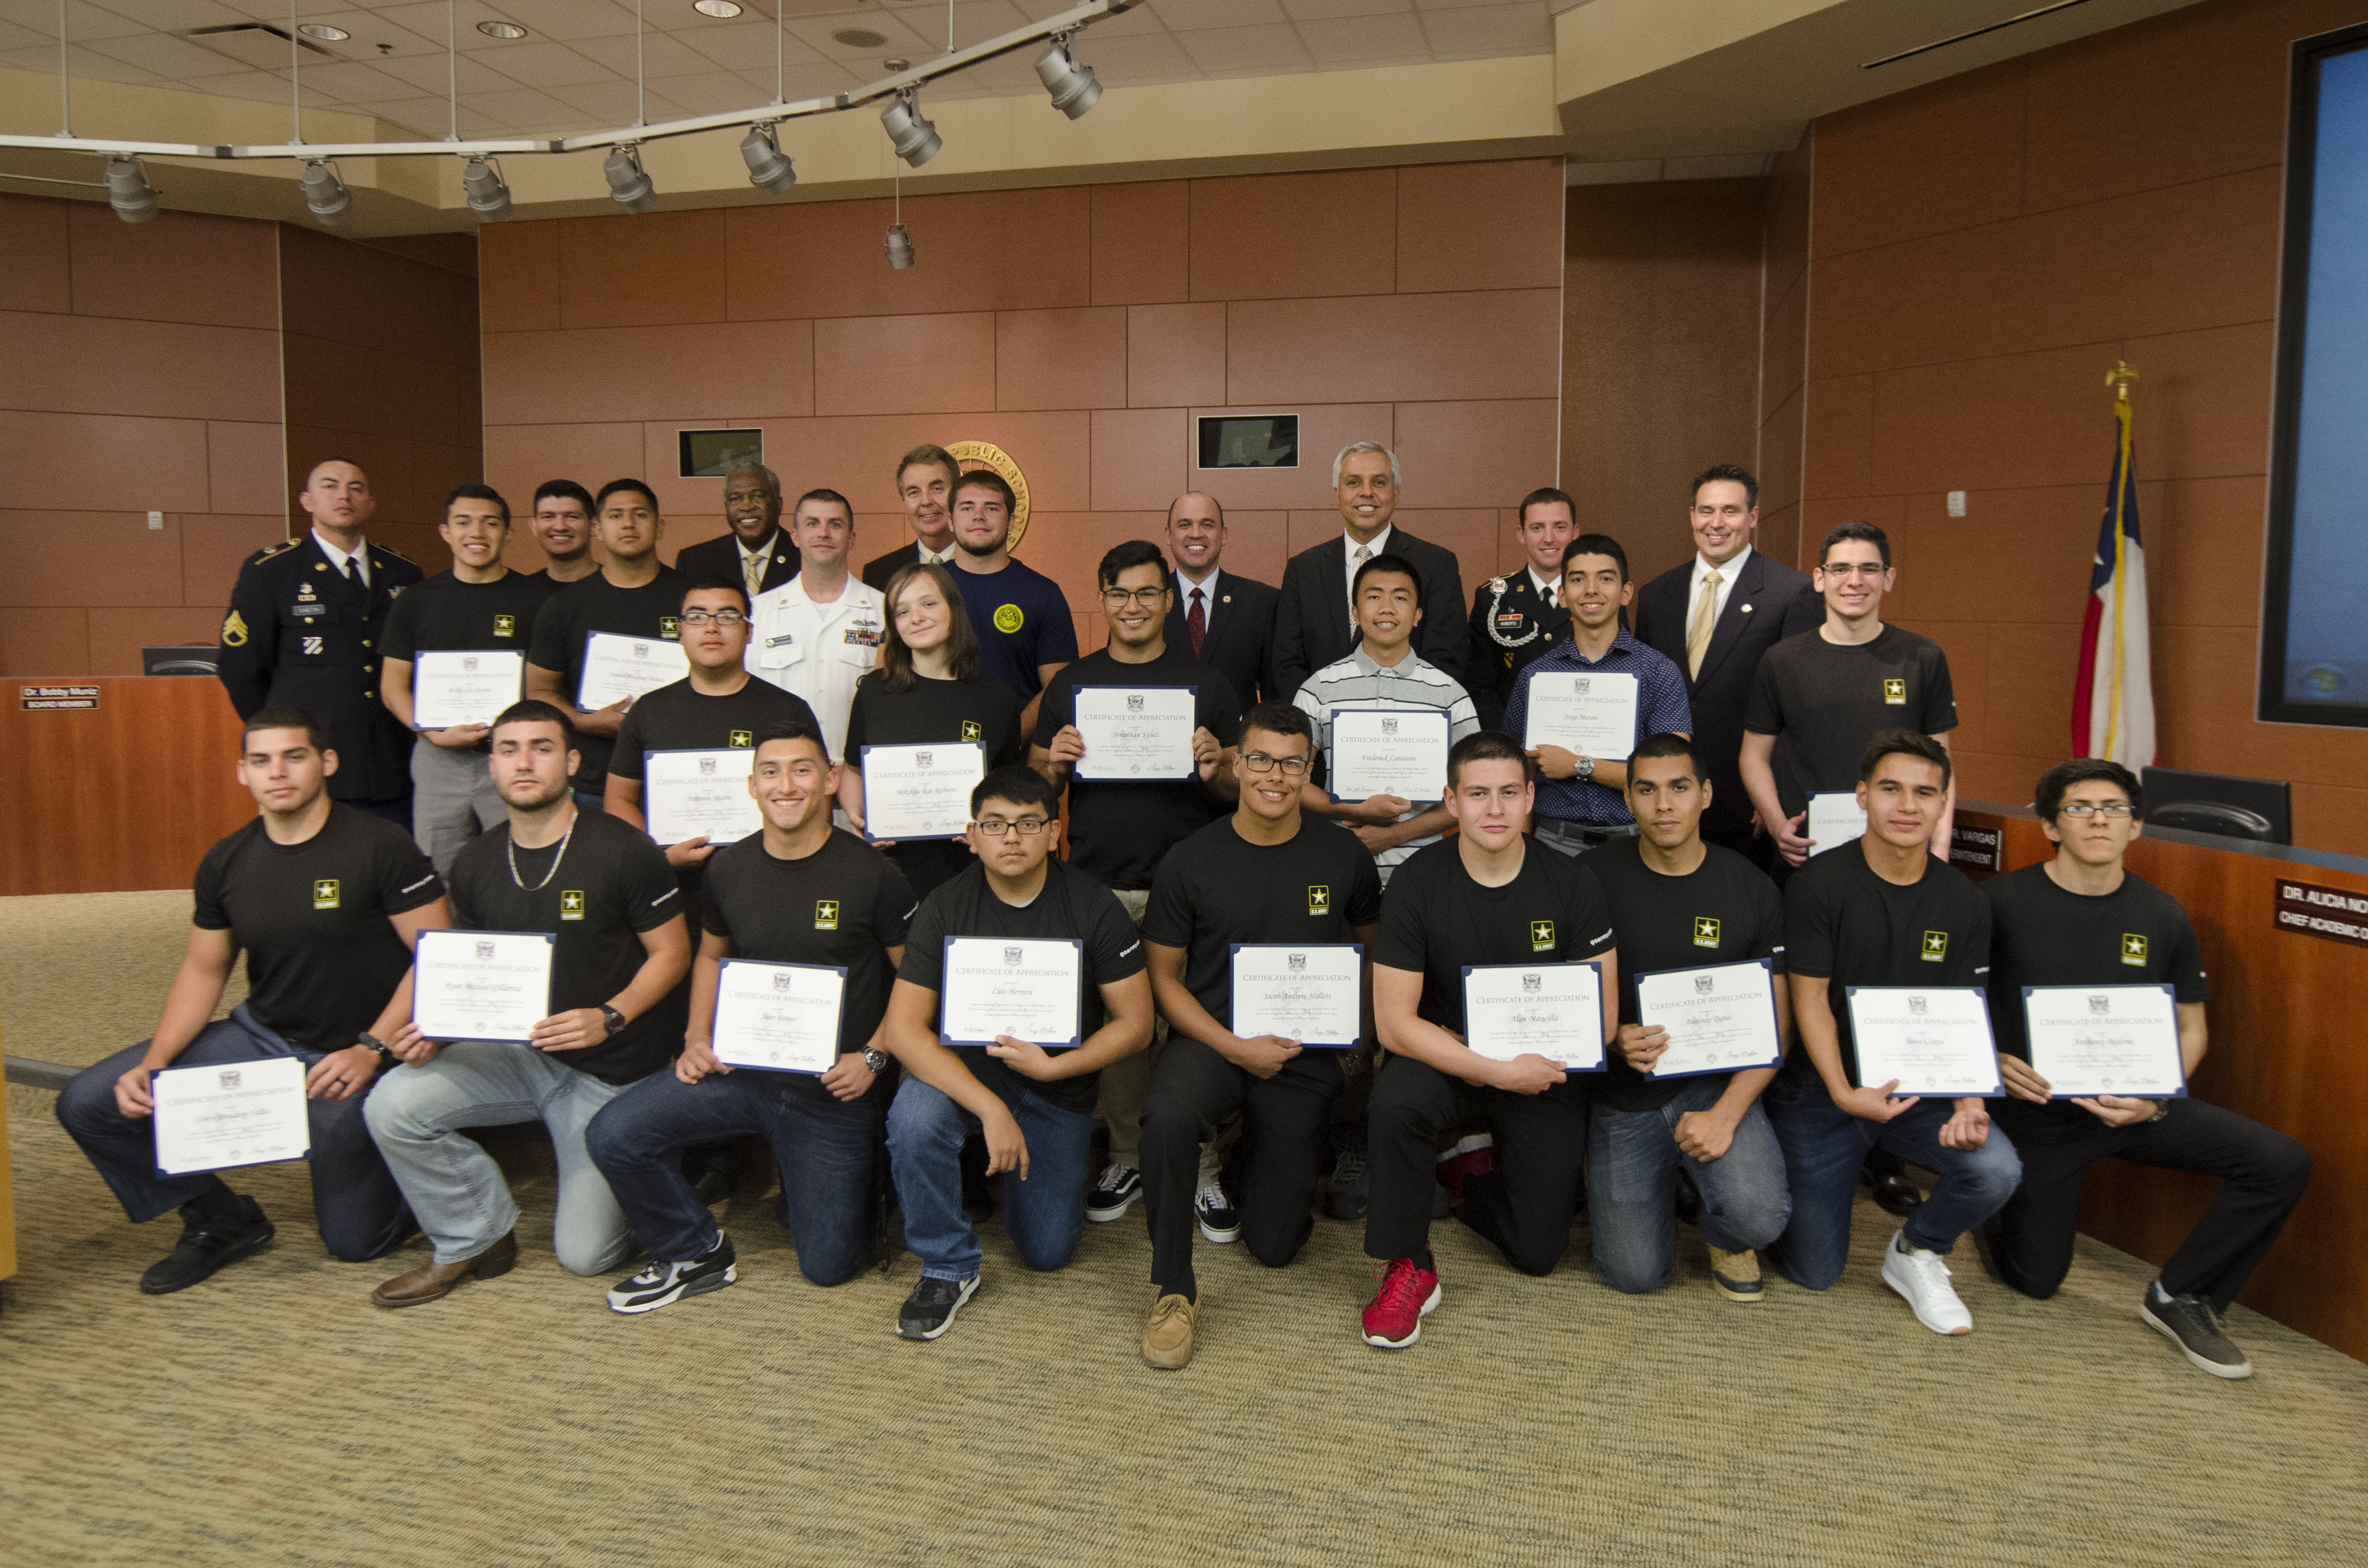 HCISD recognizes students joining the armed forces